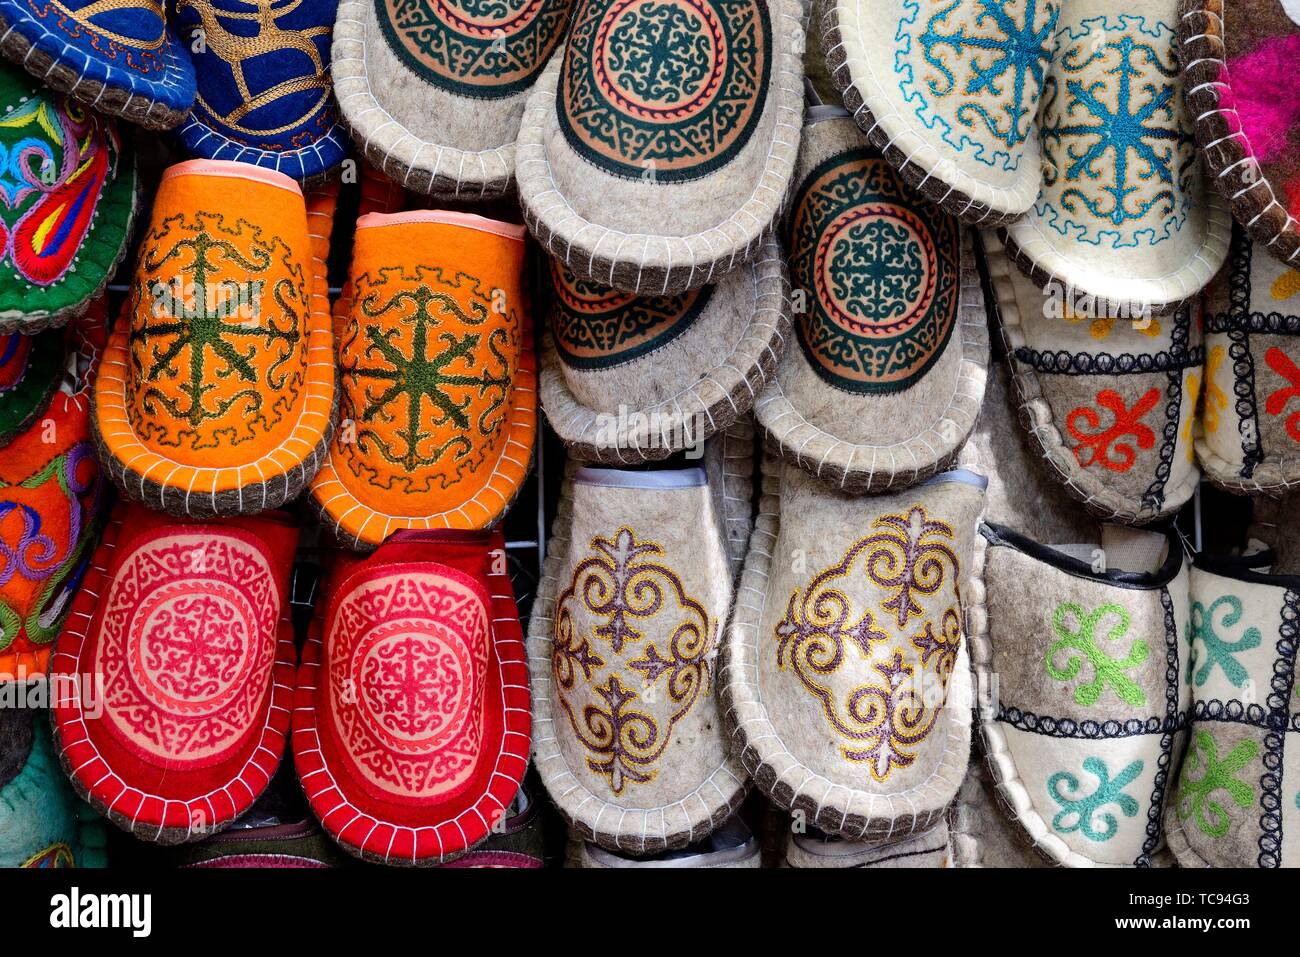 Customary shoes in Osh Bazaar of Bishkek, Kyrgyzstan - Stock Image